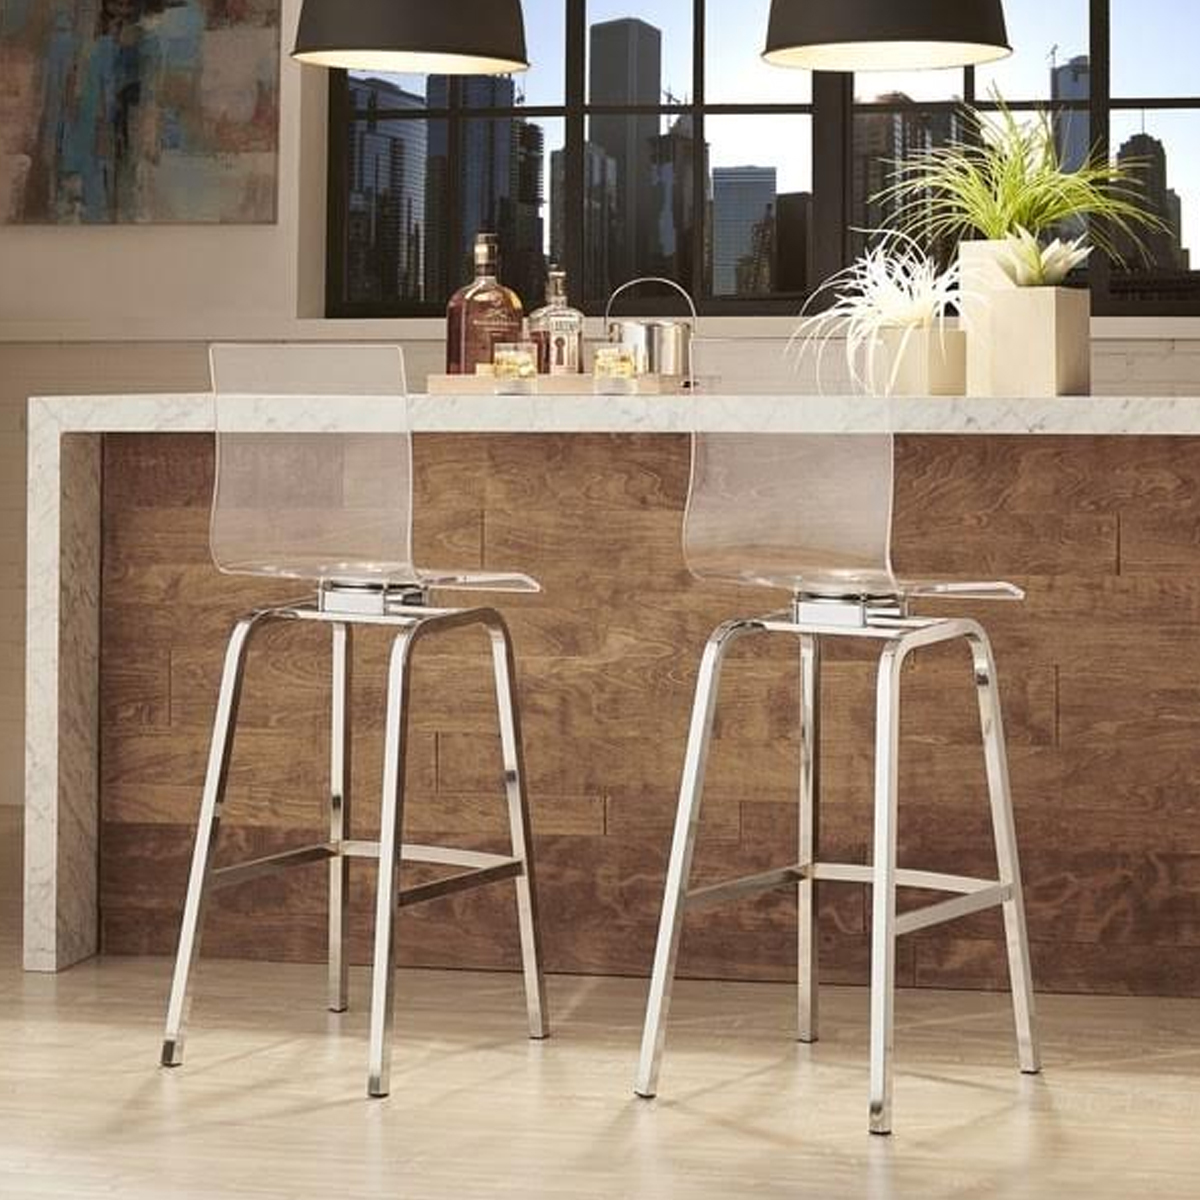 Miles Clear Acrylic Swivel High Back Barstools (Set of 2) photo